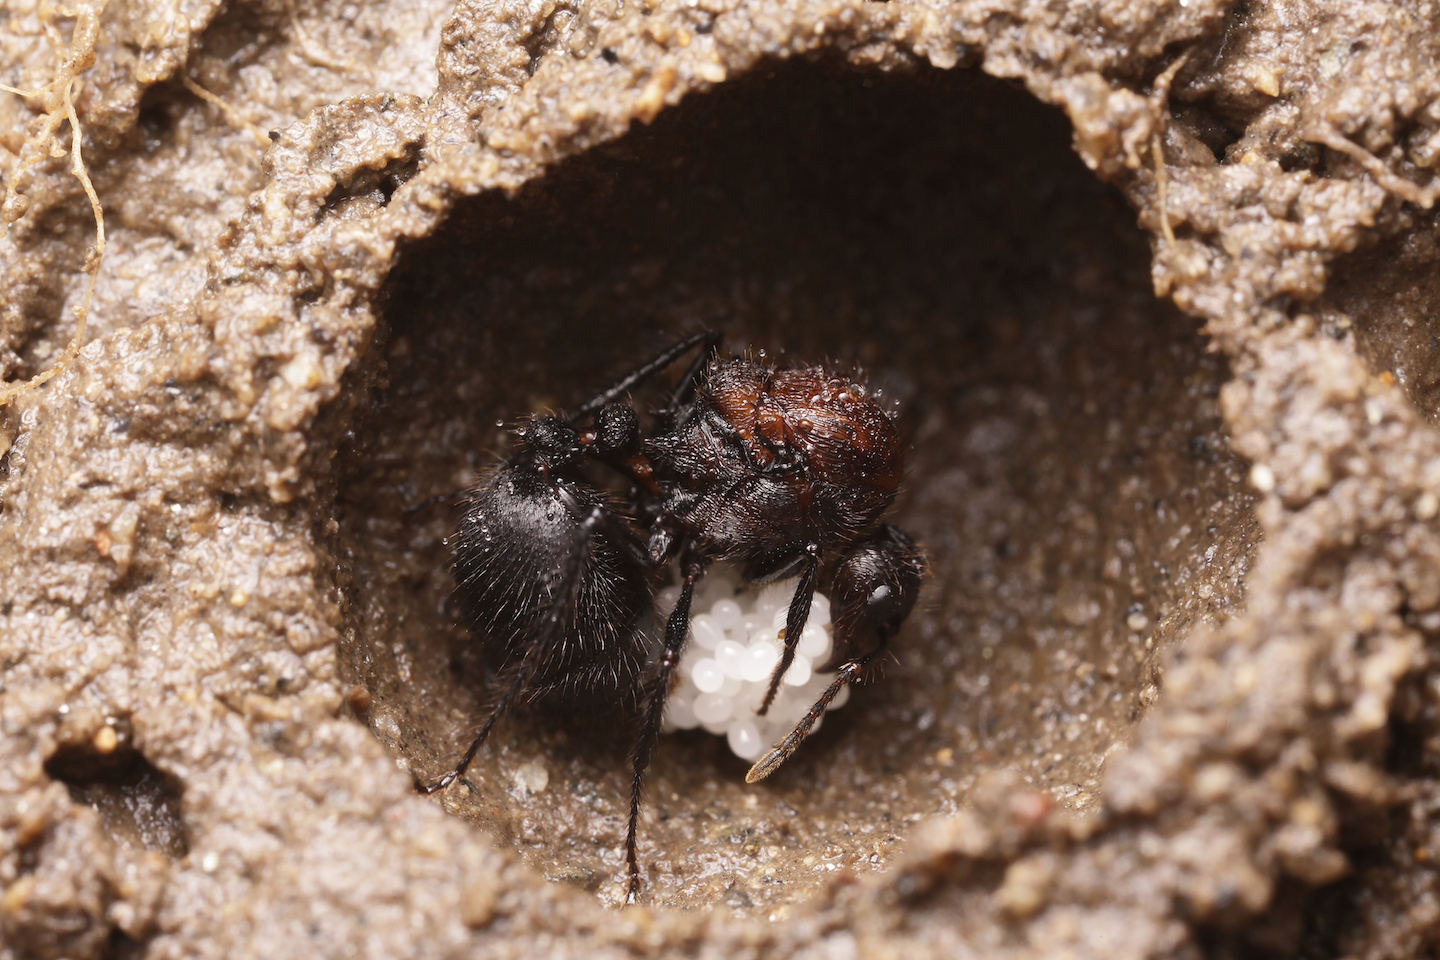 Ant queens who have chosen to co-found a colony were discovered performing a strange burial ritual if one of the co-queens died.